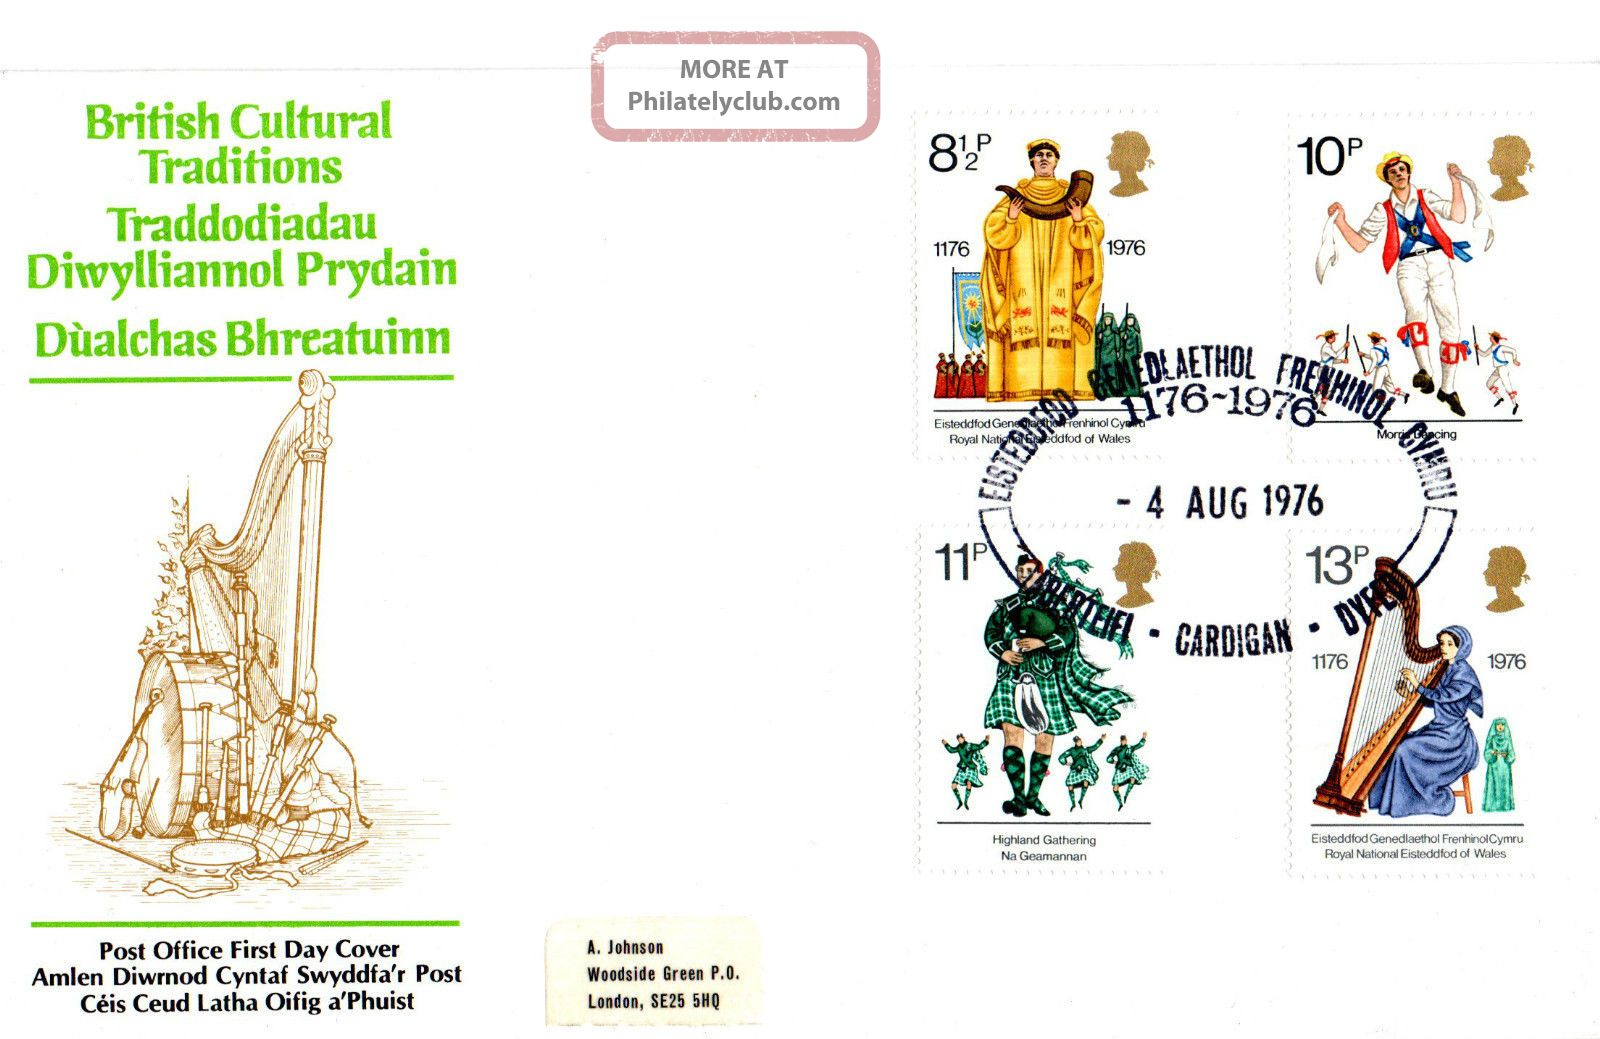 4 August 1976 British Cultural Traditions Po First Day Cover Eisttedfod Cardigan Topical Stamps photo